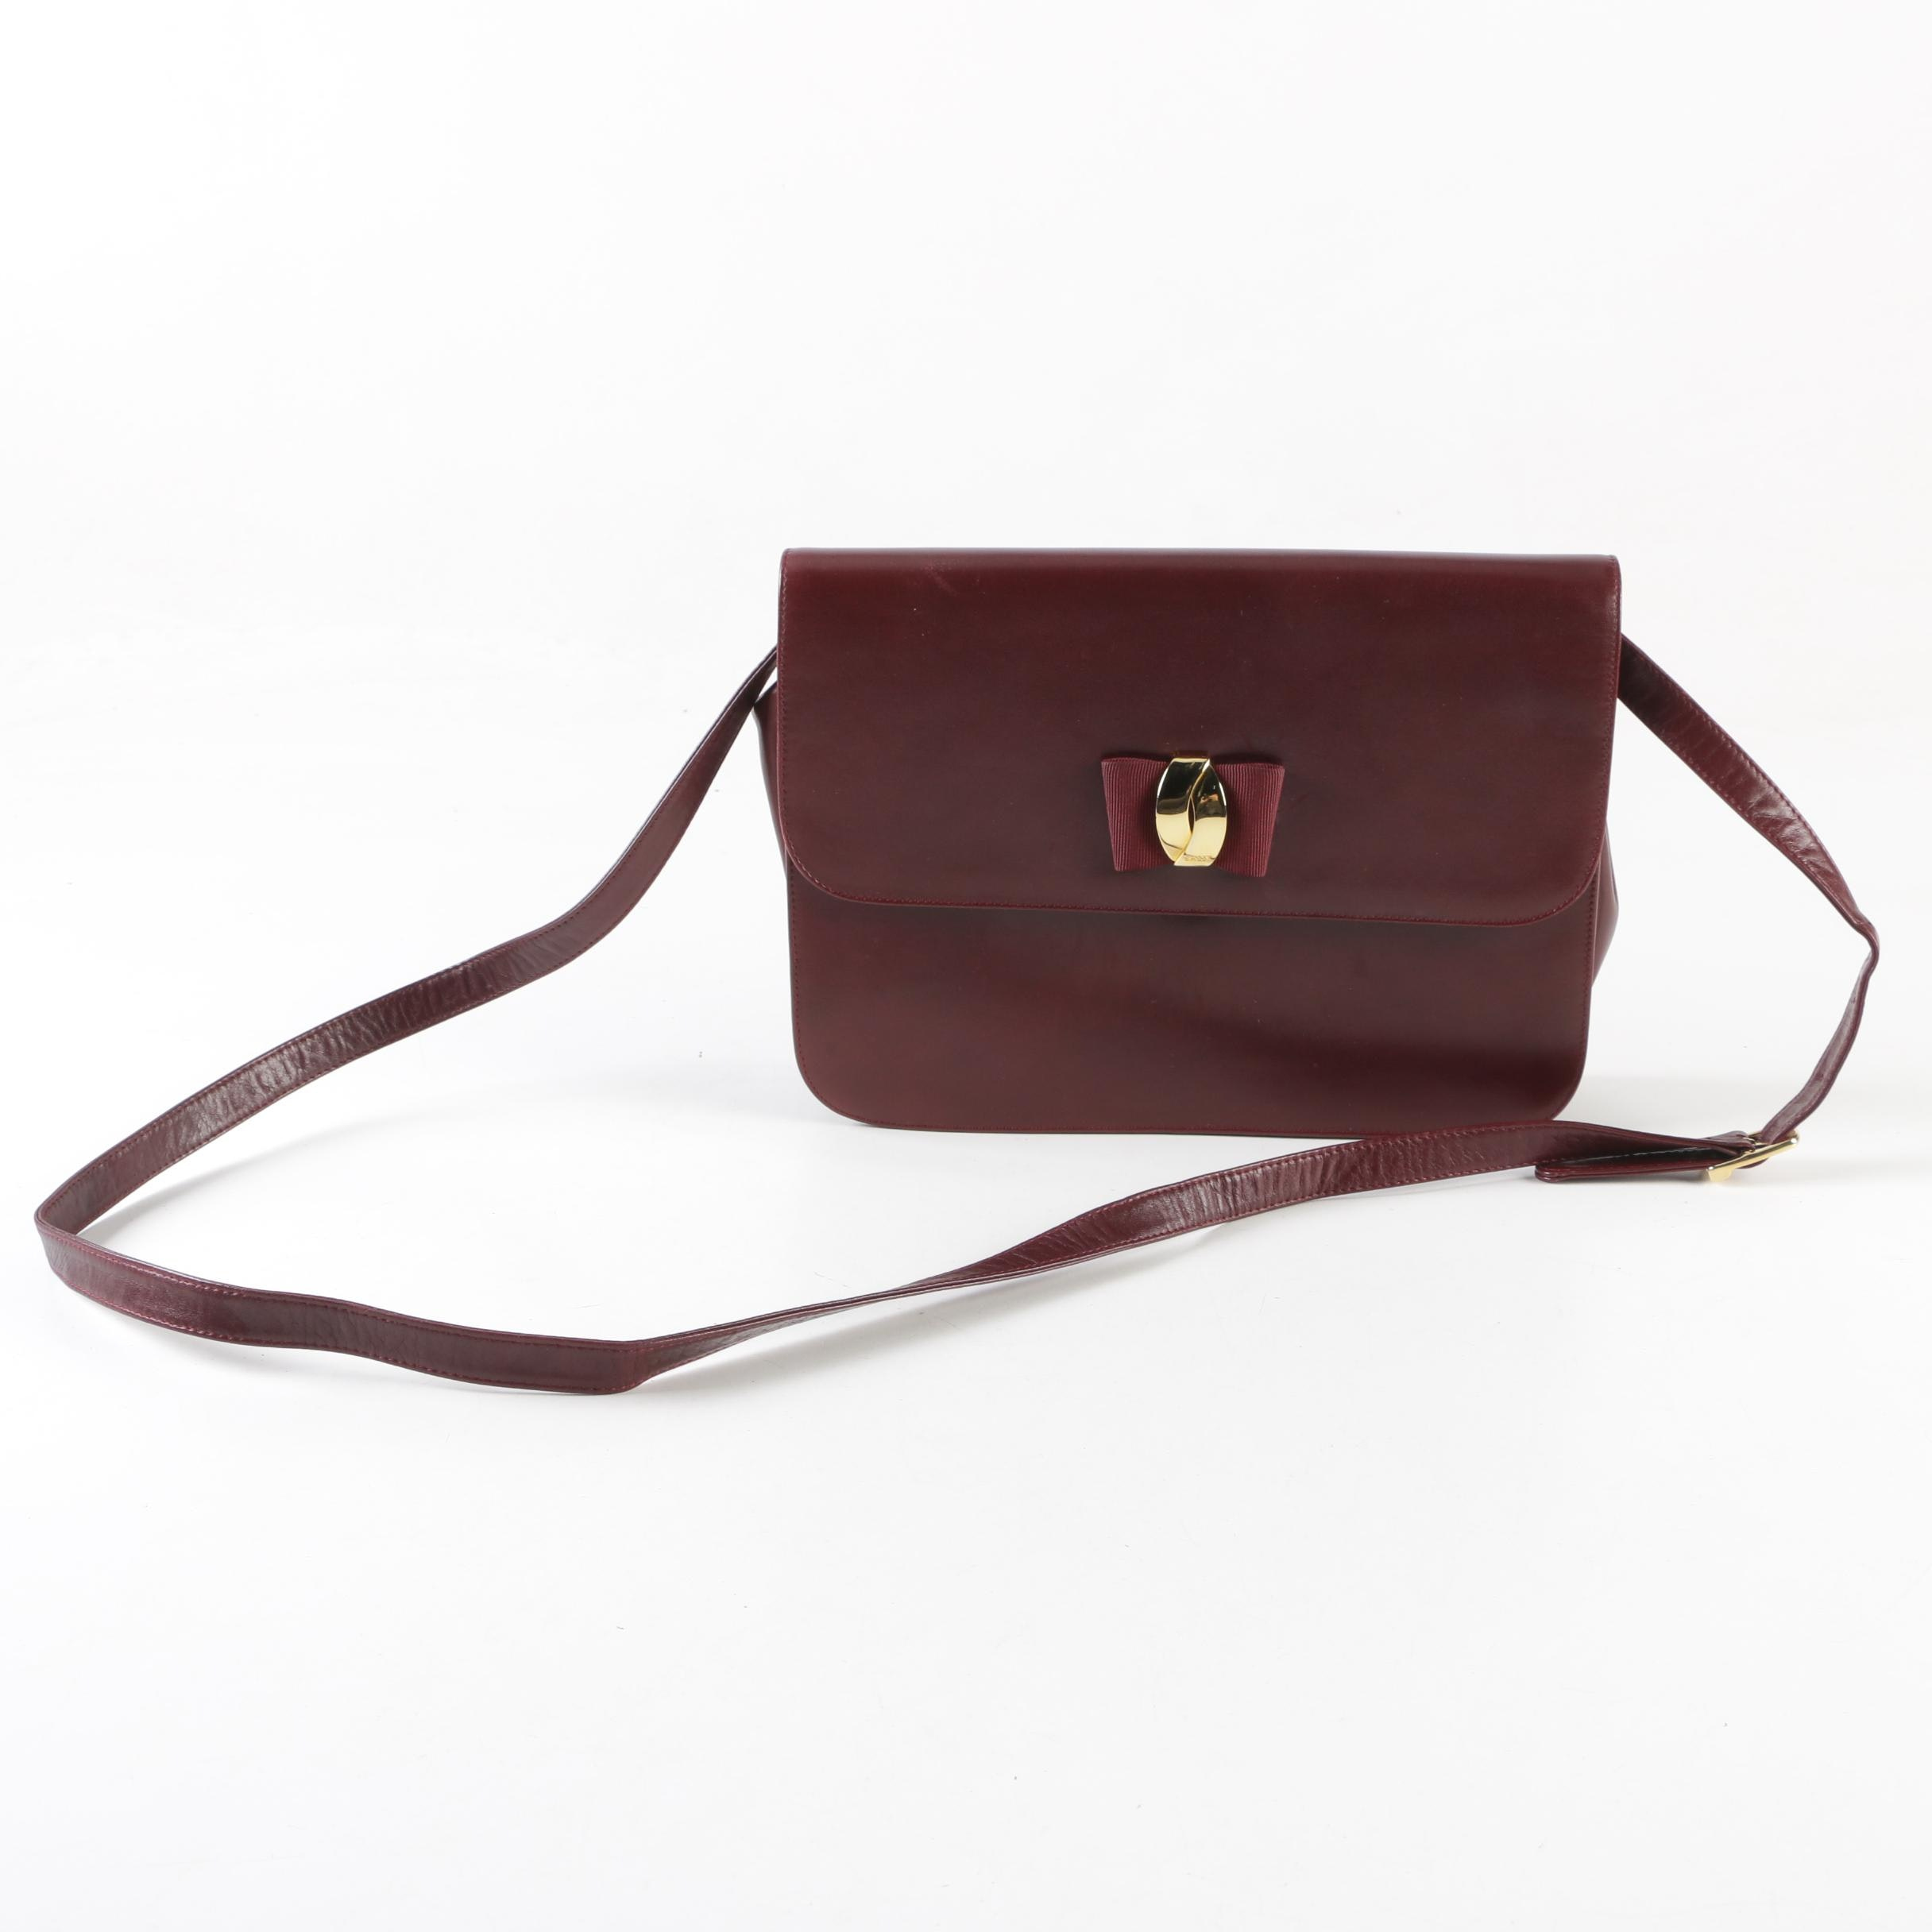 Bally Burgundy Leather Crossbody Bag with Bow Accent